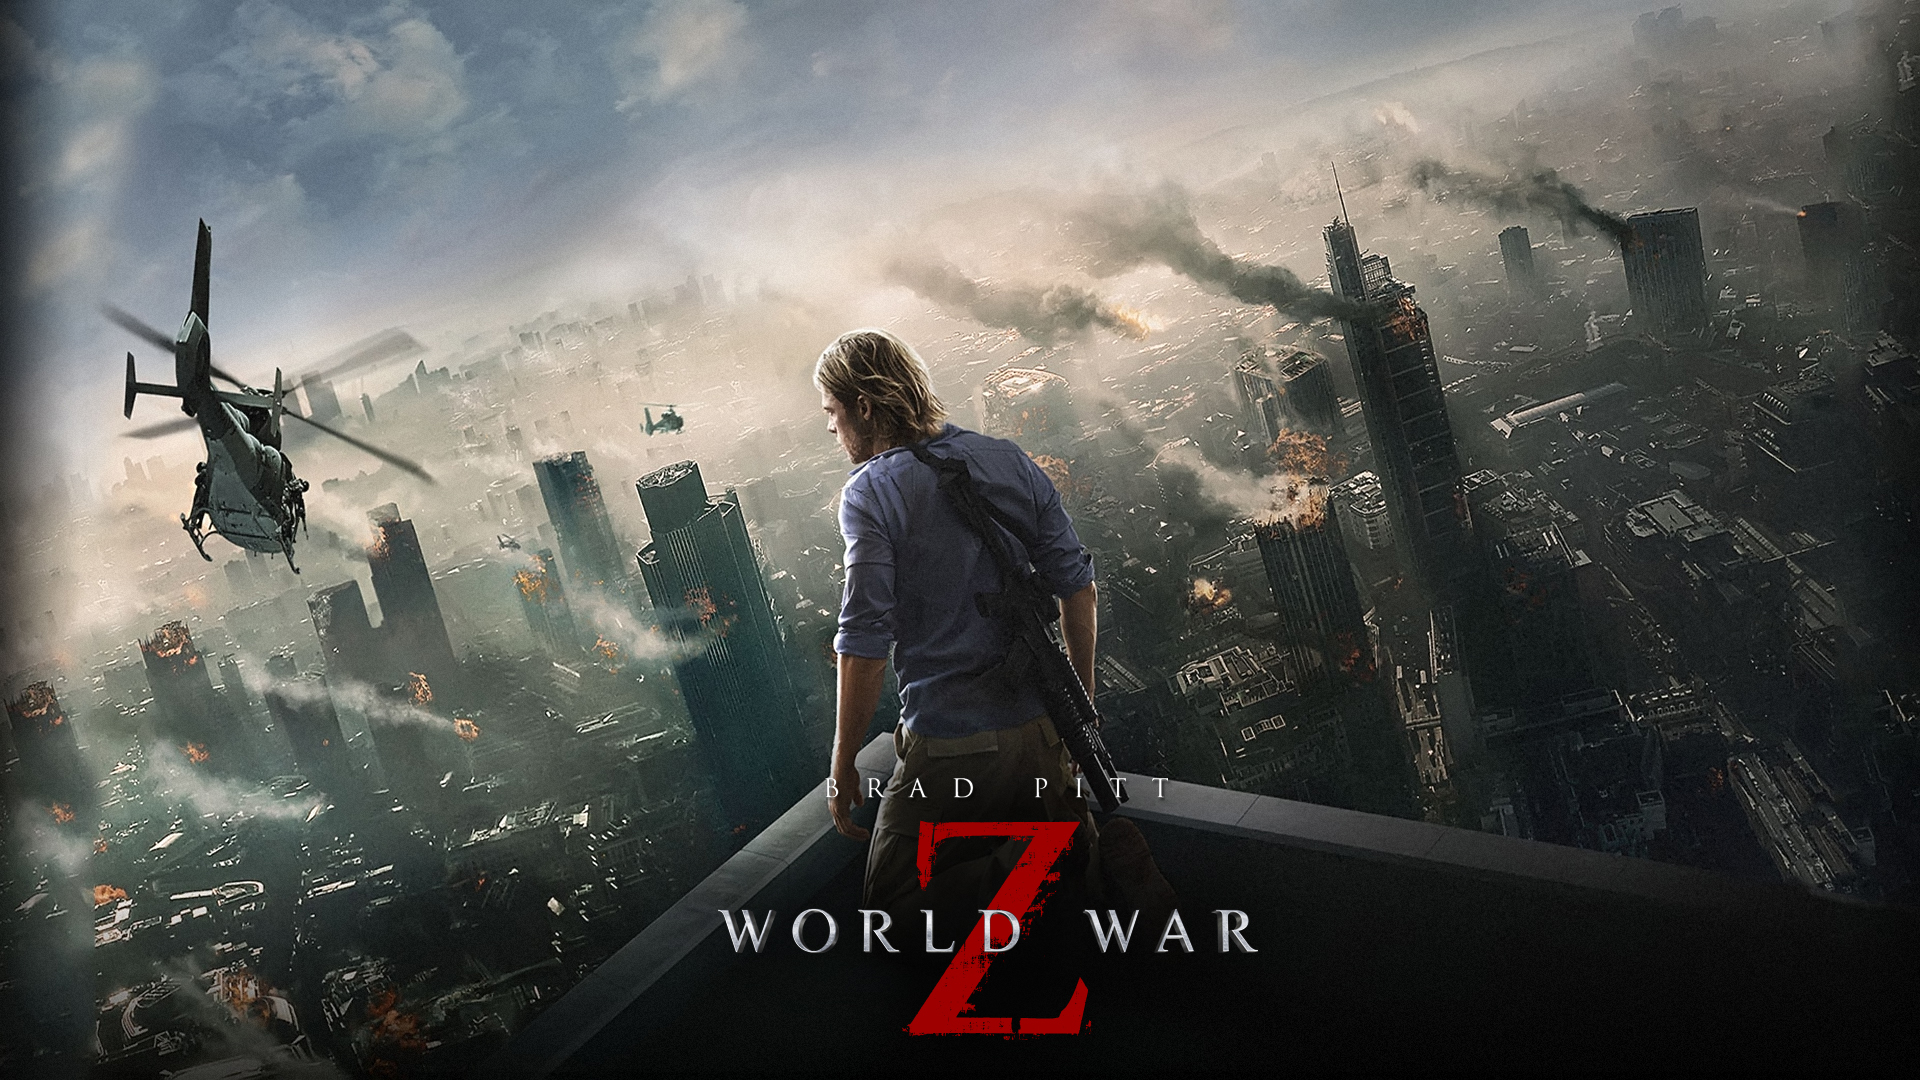 World War Z 2013 3D HSBS Sample Movie